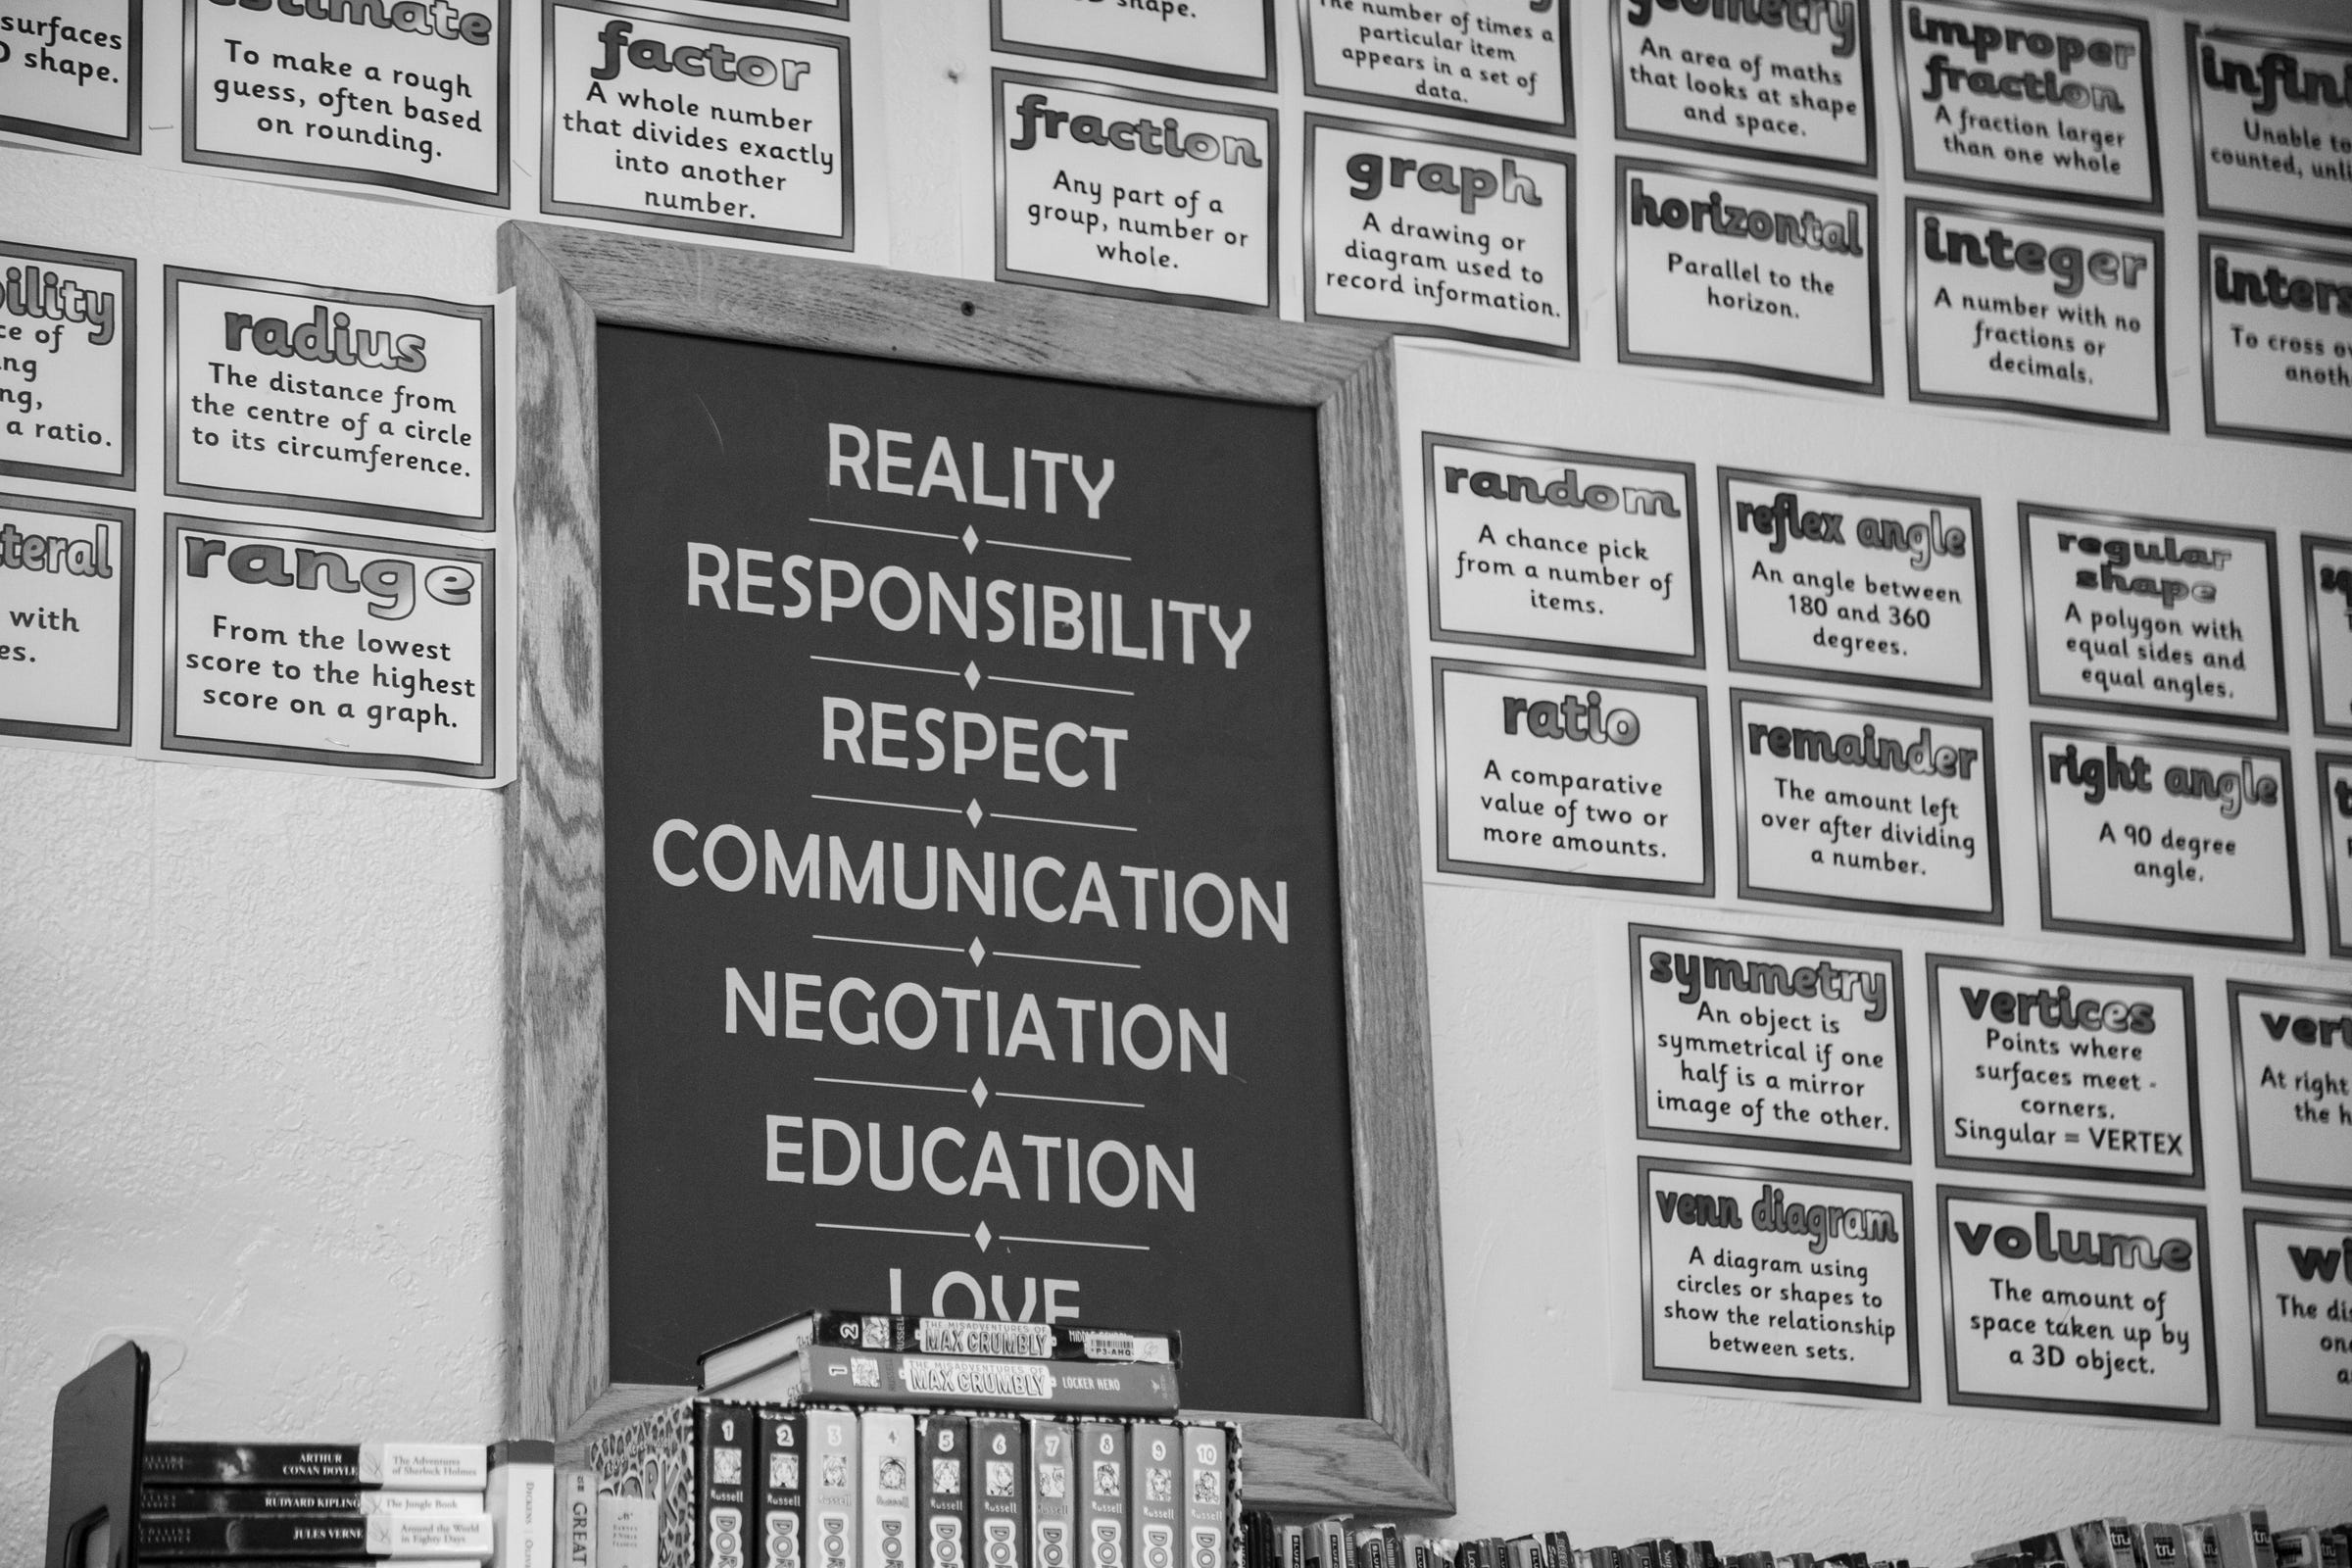 Signs coaching life skills on the classroom wall at Wolverine Growth and Recovery Center in Vassar, July 25, 2019.